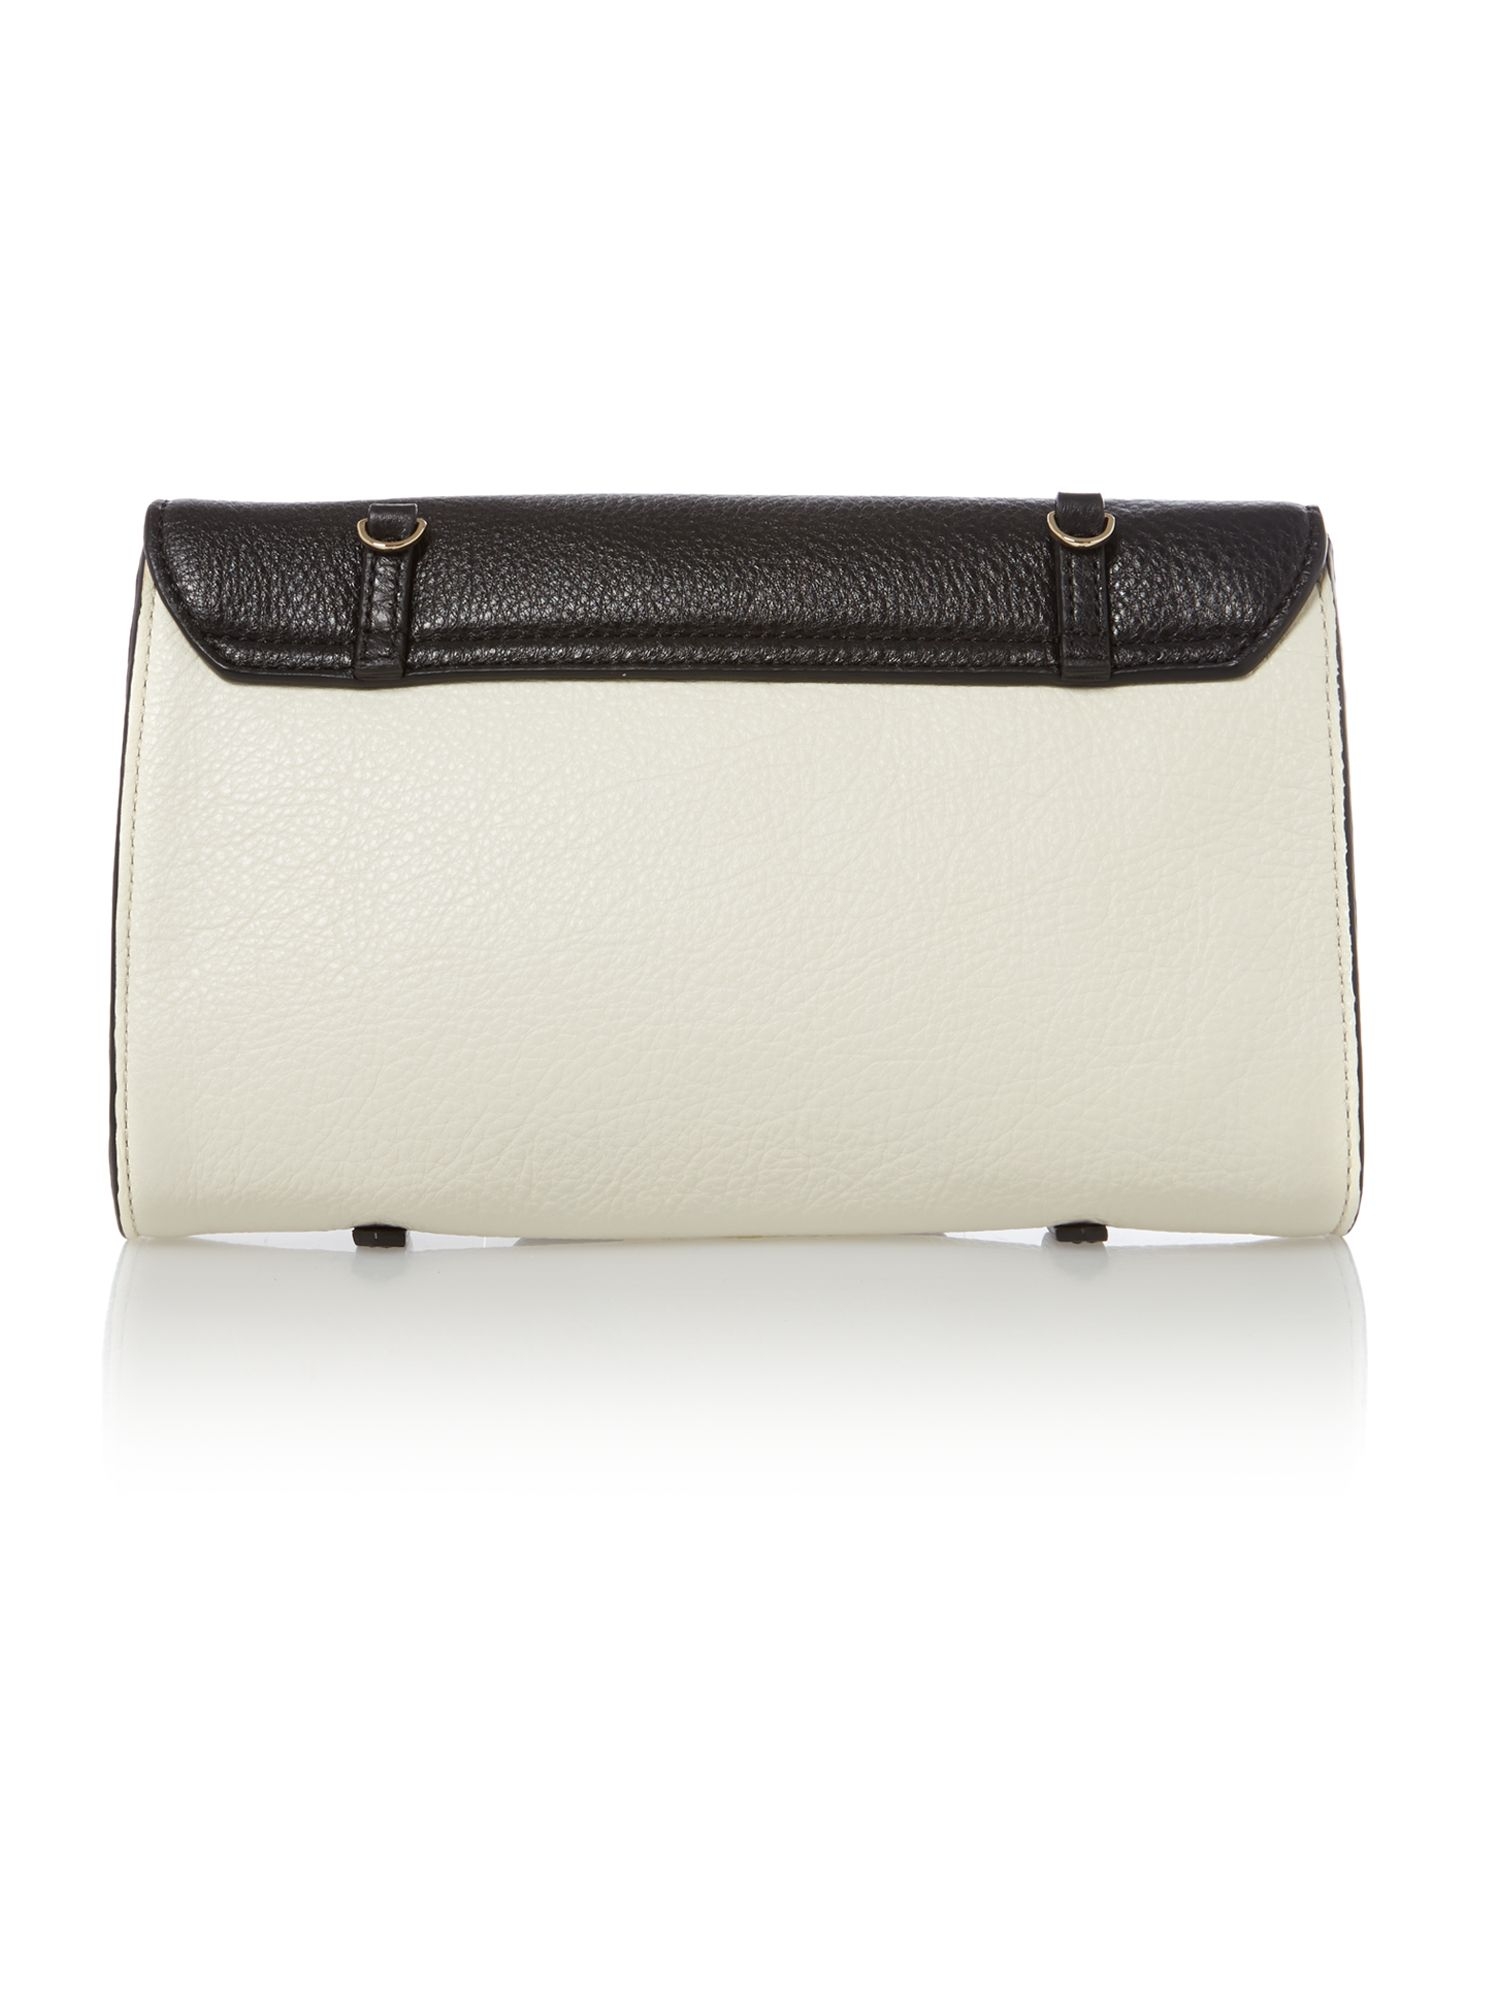 Celeste black/cream small cross body bag